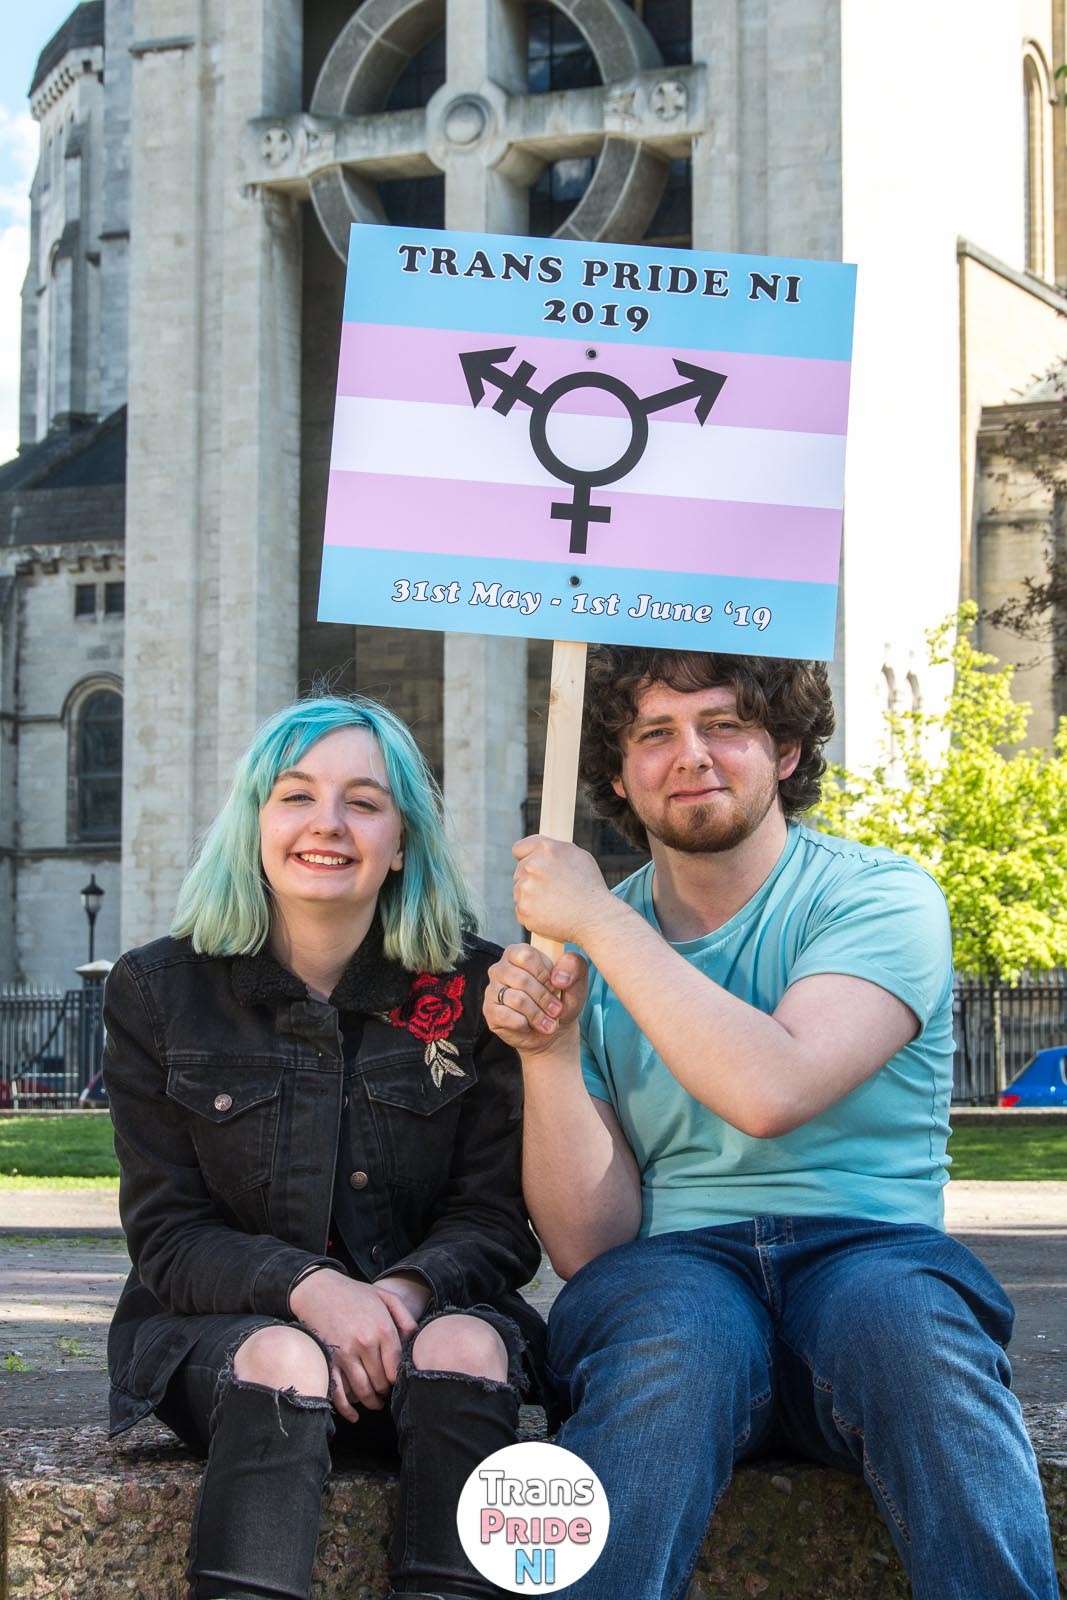 Social Media Marketing Consultants Belfast - Trans Pride NI campaign photo 7685. Photo by Bout Yeh used in a Social Media Marketing campaign across Bout Yeh's Social Media platforms for the Trans Pride NI Festival Northern Ireland